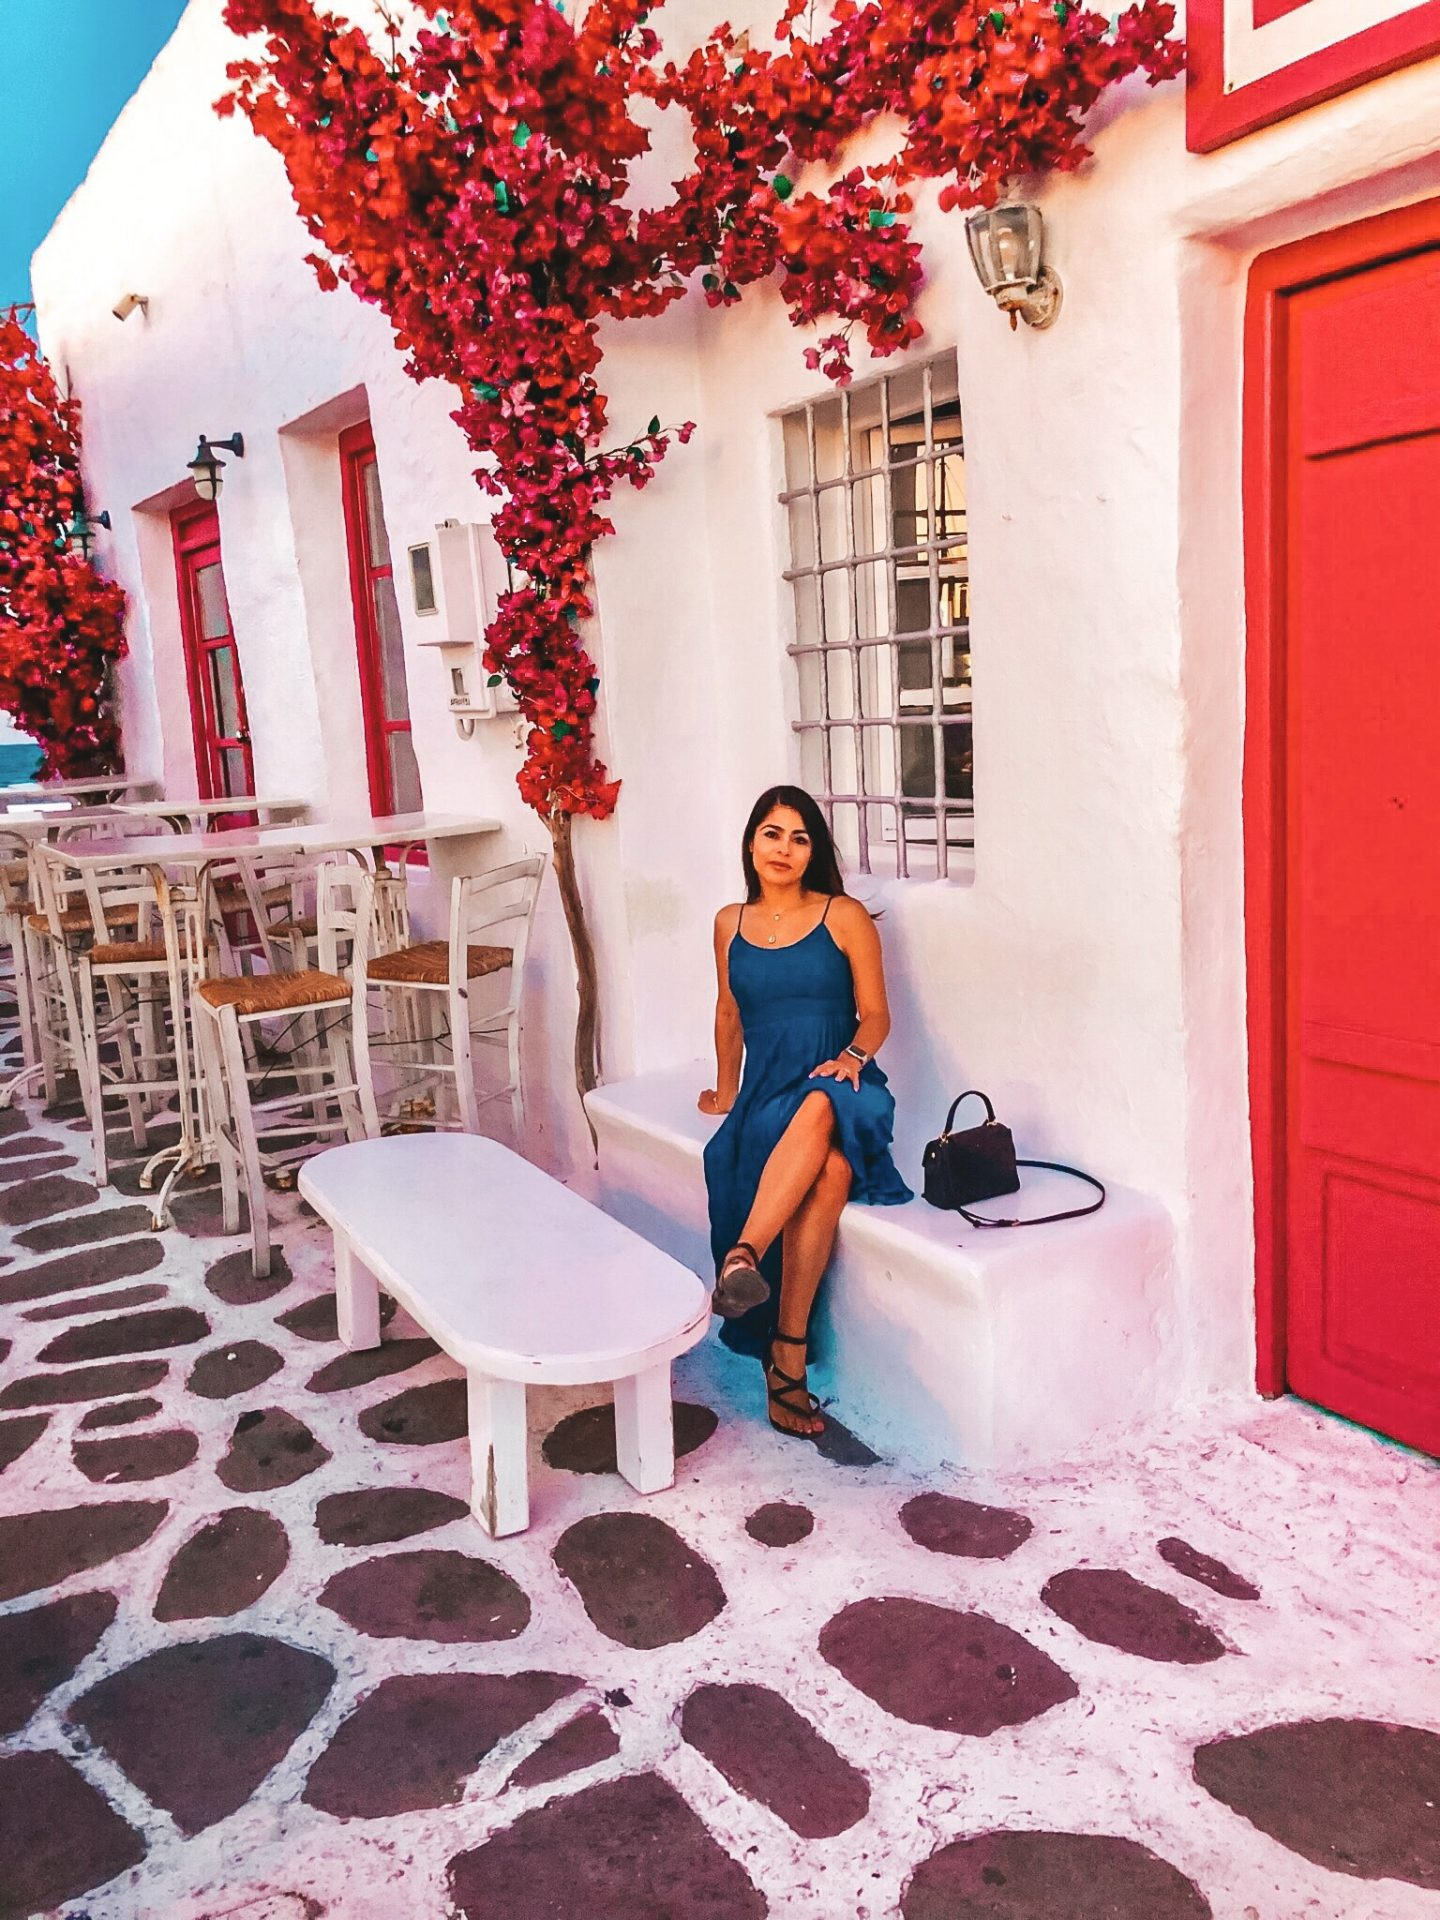 Tips for planning a trip to Paros, Greece